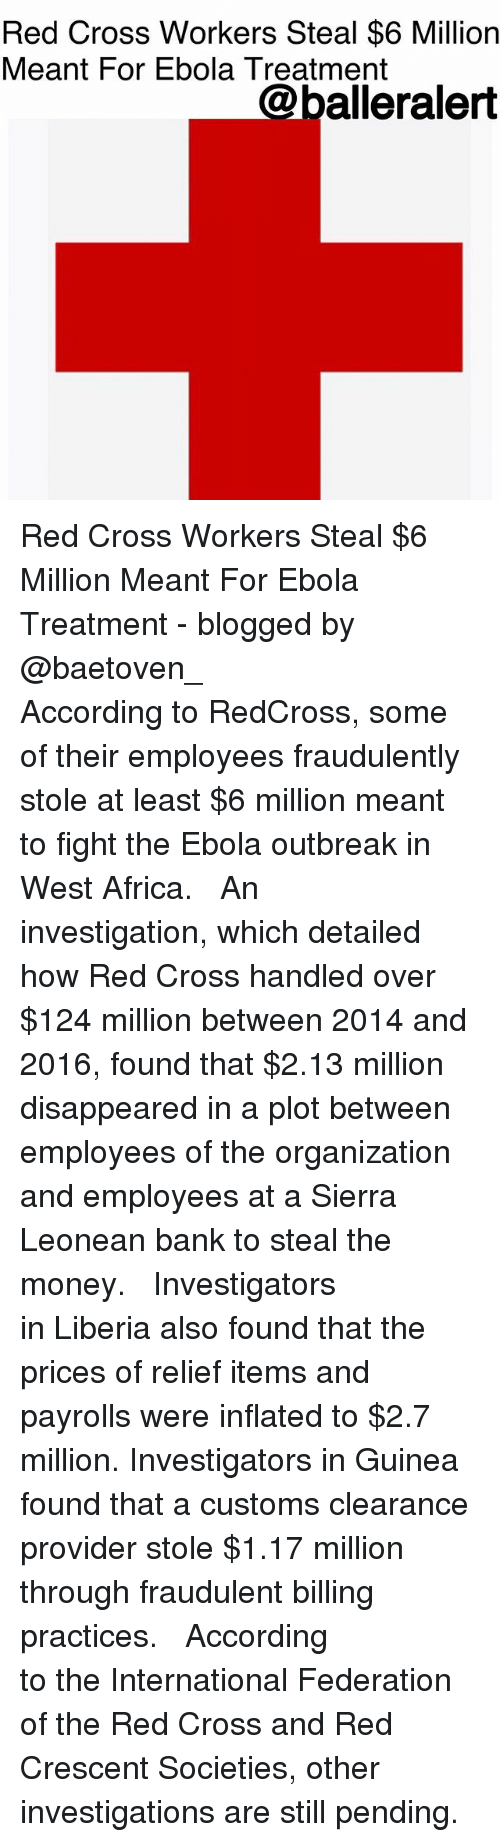 Africa, Memes, and Money: Red Cross Workers Steal $6 Million  Meant For Ebola Treatment  @balleralert Red Cross Workers Steal $6 Million Meant For Ebola Treatment - blogged by @baetoven_ ⠀⠀⠀⠀⠀⠀⠀ ⠀⠀⠀⠀⠀⠀⠀ According to RedCross, some of their employees fraudulently stole at least $6 million meant to fight the Ebola outbreak in West Africa. ⠀⠀⠀⠀⠀⠀⠀ ⠀⠀⠀⠀⠀⠀⠀ An investigation, which detailed how Red Cross handled over $124 million between 2014 and 2016, found that $2.13 million disappeared in a plot between employees of the organization and employees at a Sierra Leonean bank to steal the money. ⠀⠀⠀⠀⠀⠀⠀ ⠀⠀⠀⠀⠀⠀⠀ Investigators in Liberia also found that the prices of relief items and payrolls were inflated to $2.7 million. Investigators in Guinea found that a customs clearance provider stole $1.17 million through fraudulent billing practices. ⠀⠀⠀⠀⠀⠀⠀ ⠀⠀⠀⠀⠀⠀⠀ According to the International Federation of the Red Cross and Red Crescent Societies, other investigations are still pending.